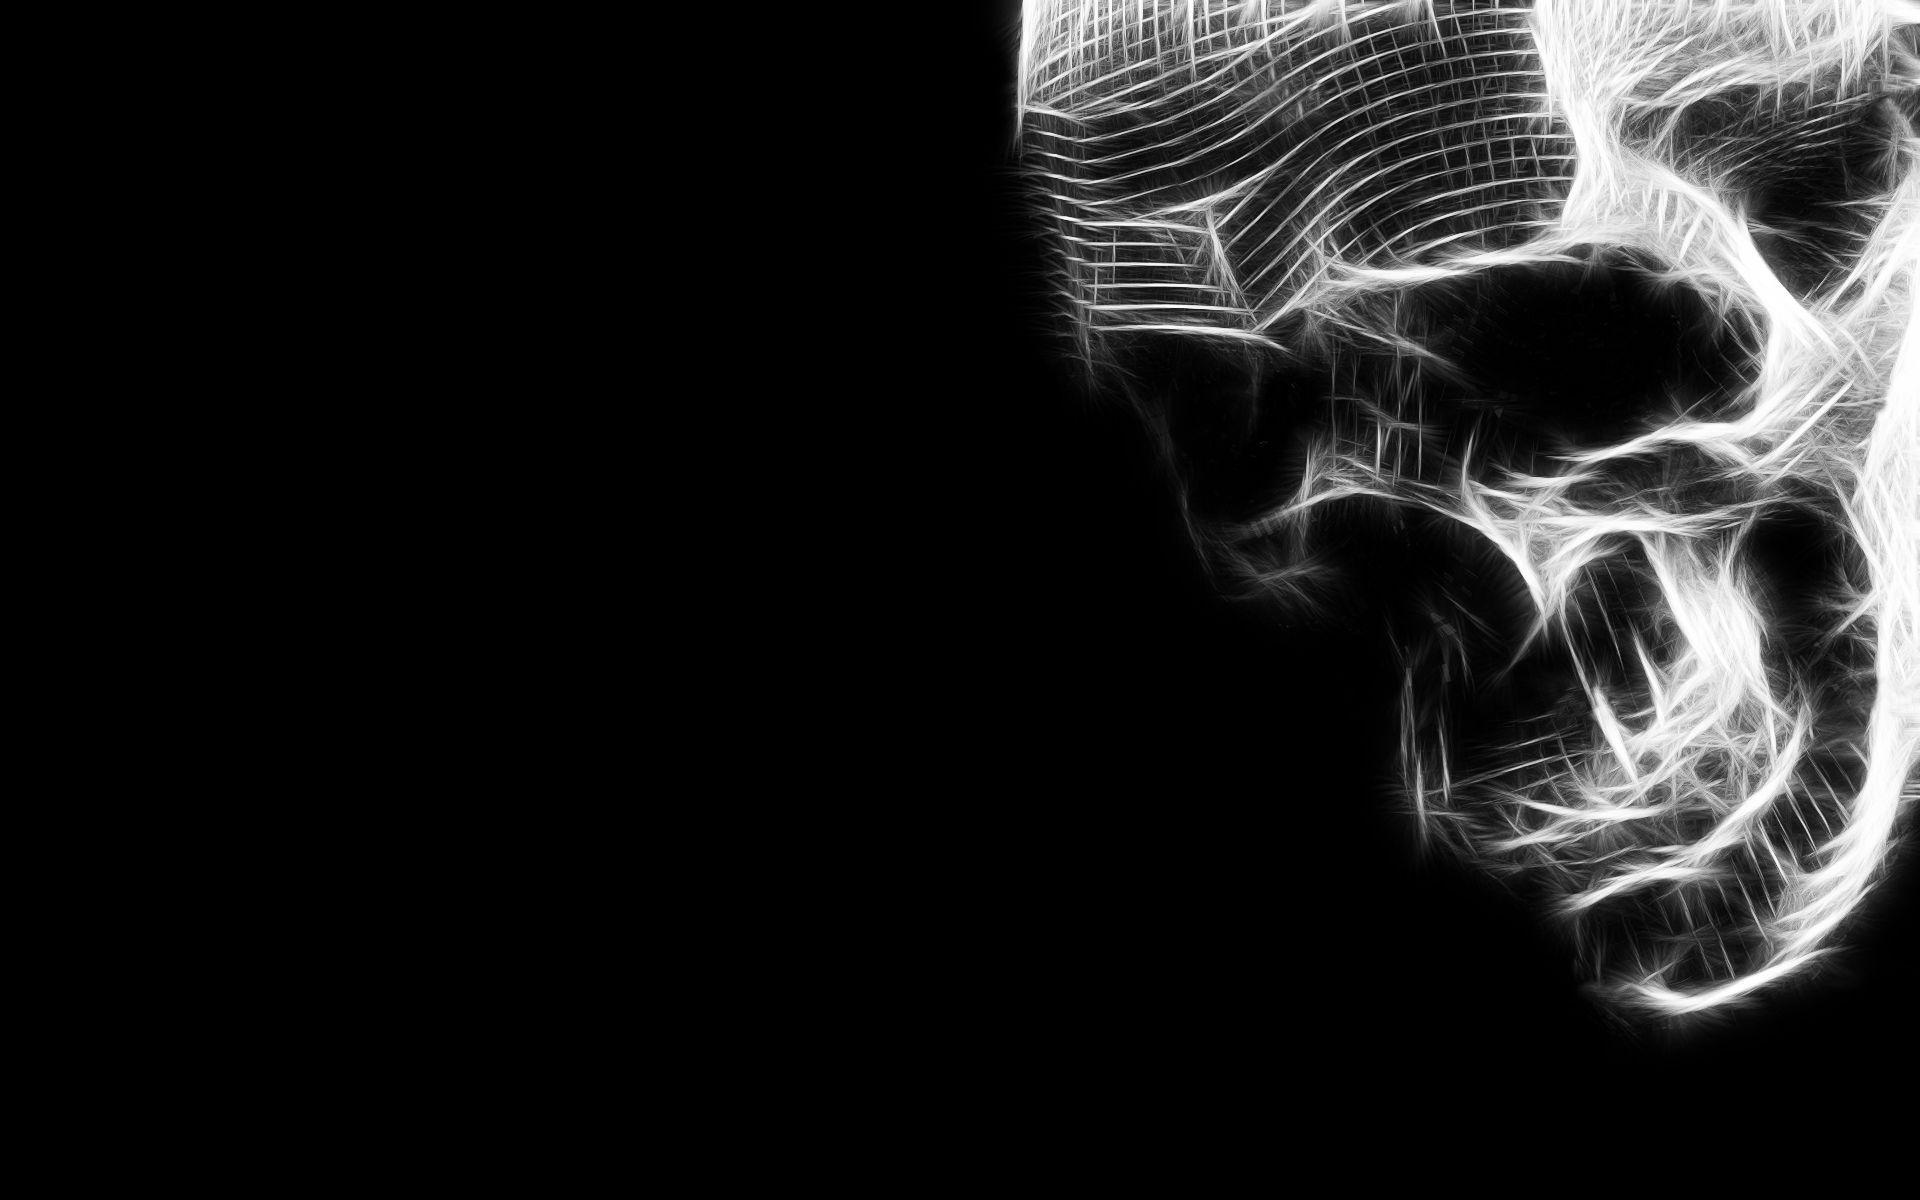 3d Skull Wallpapers 254 Wallpapers HD | colourinwallpaper.